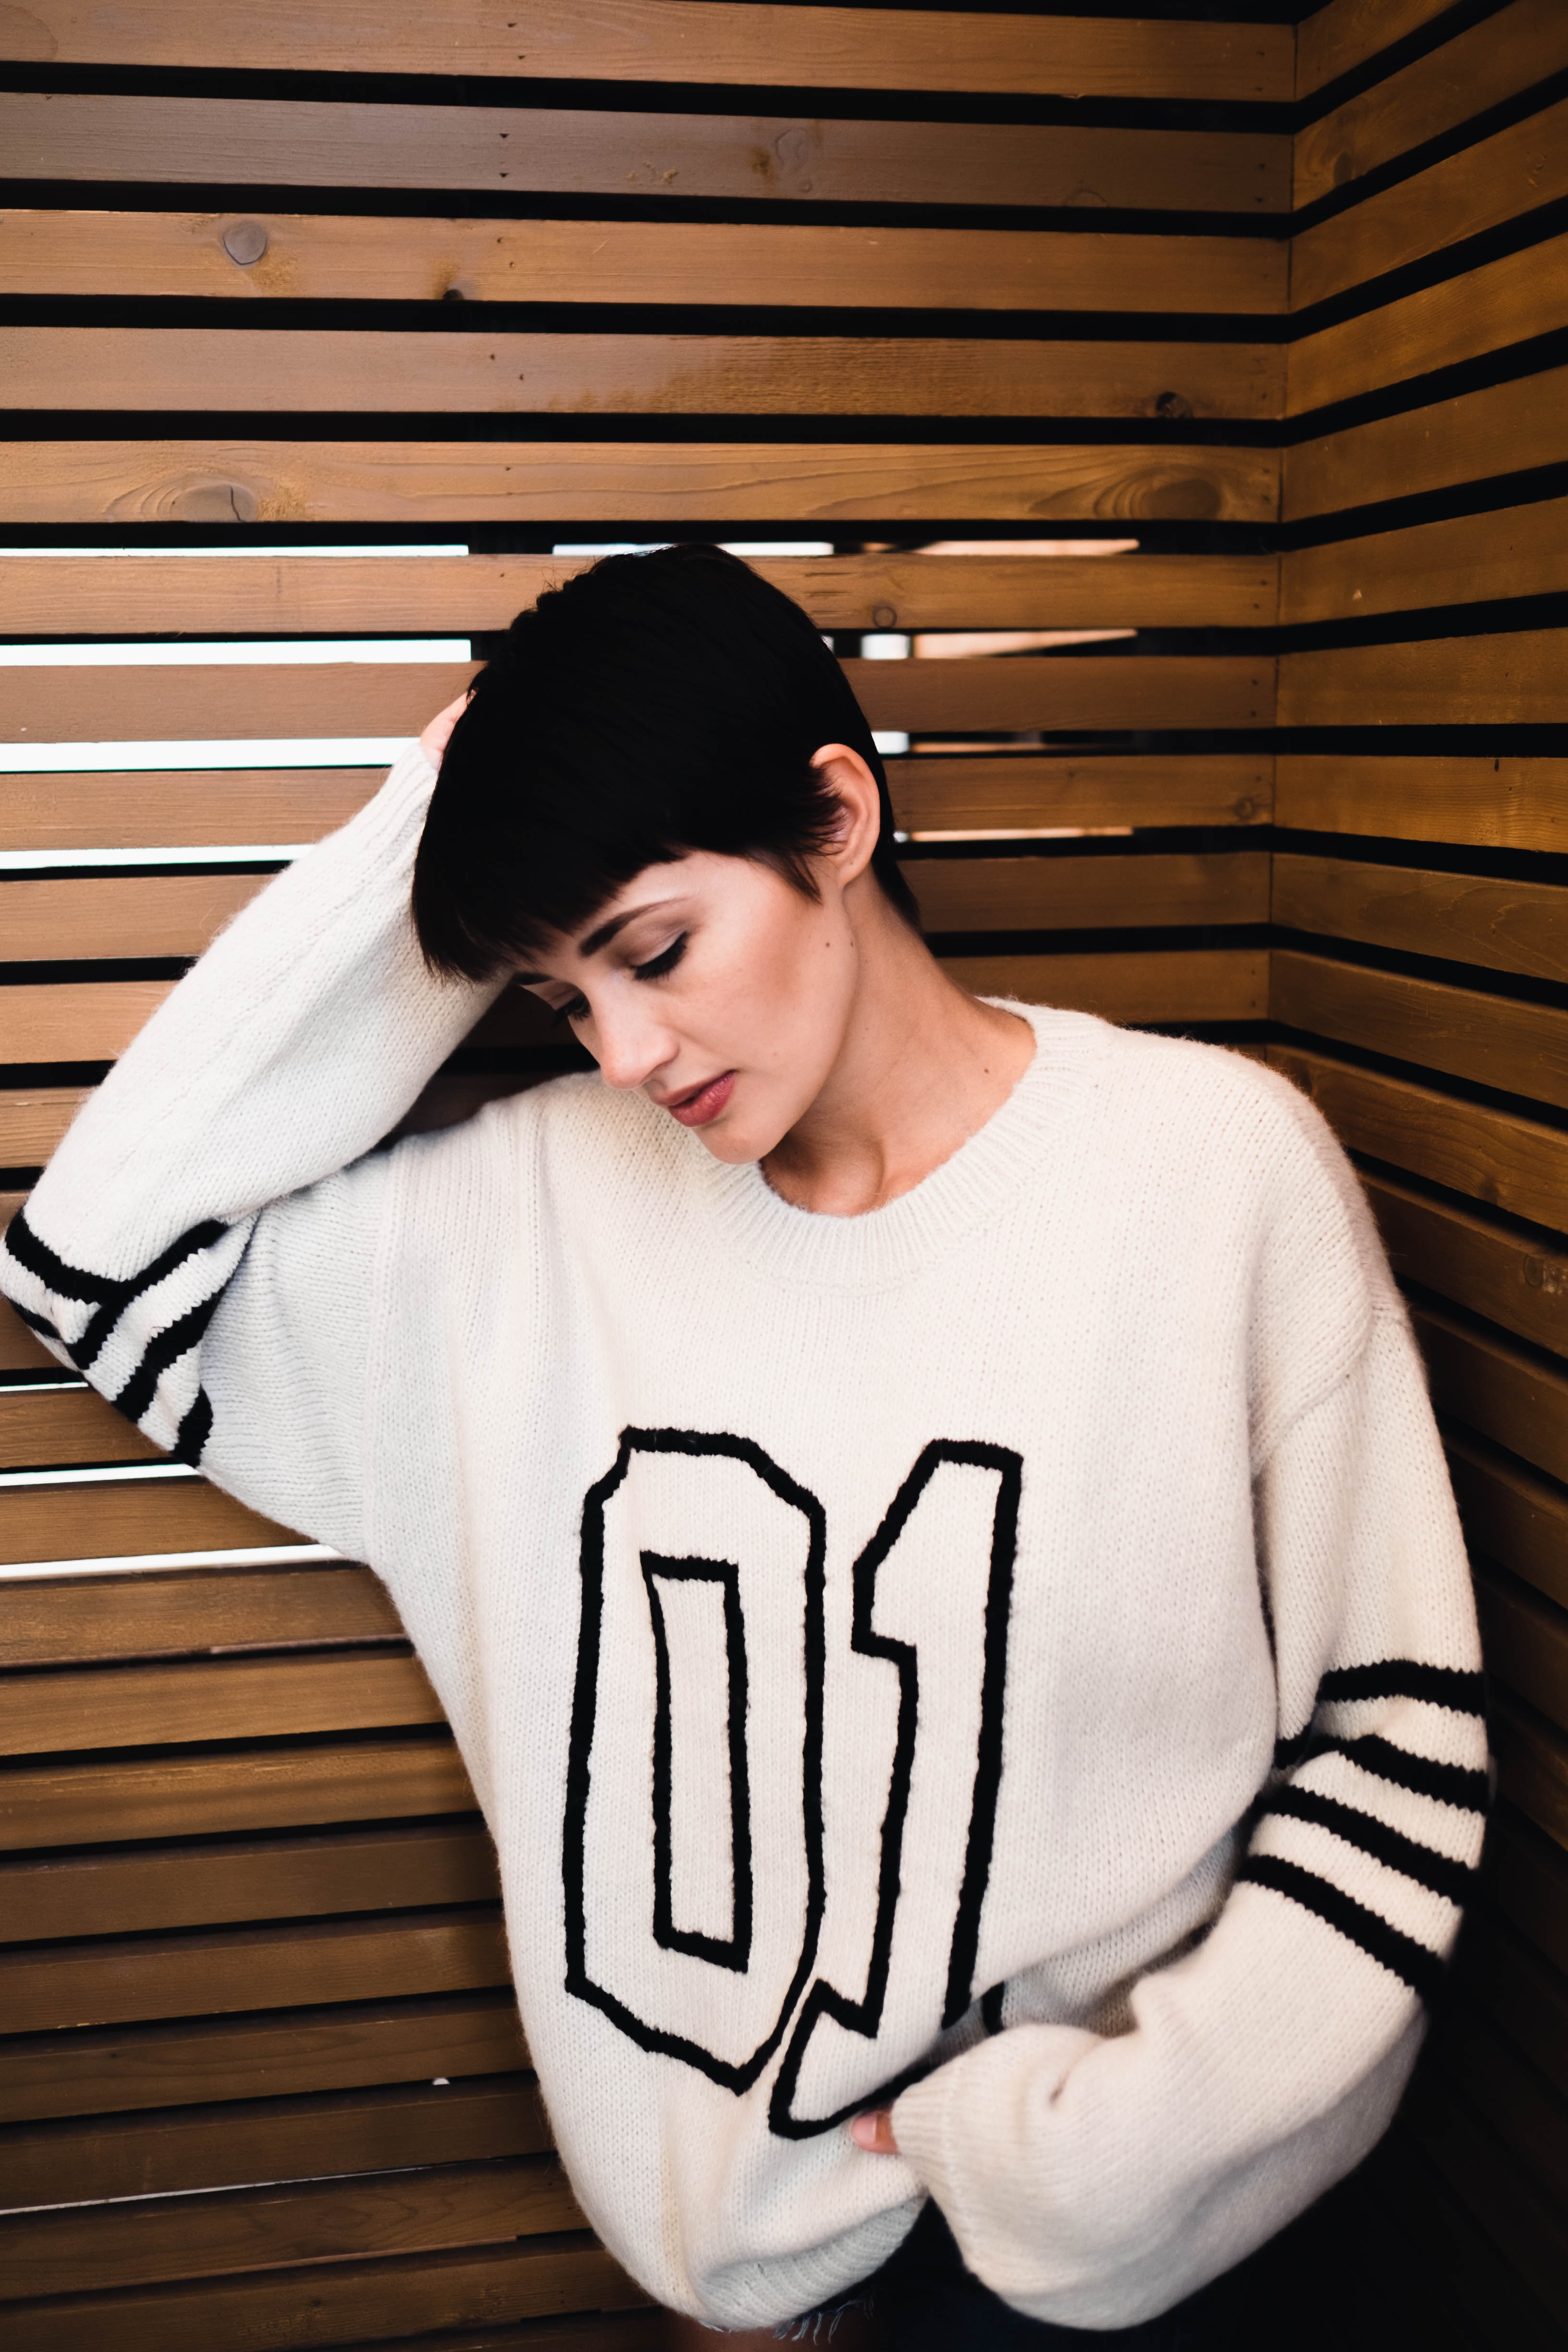 women's wearing black and white sweater near wall